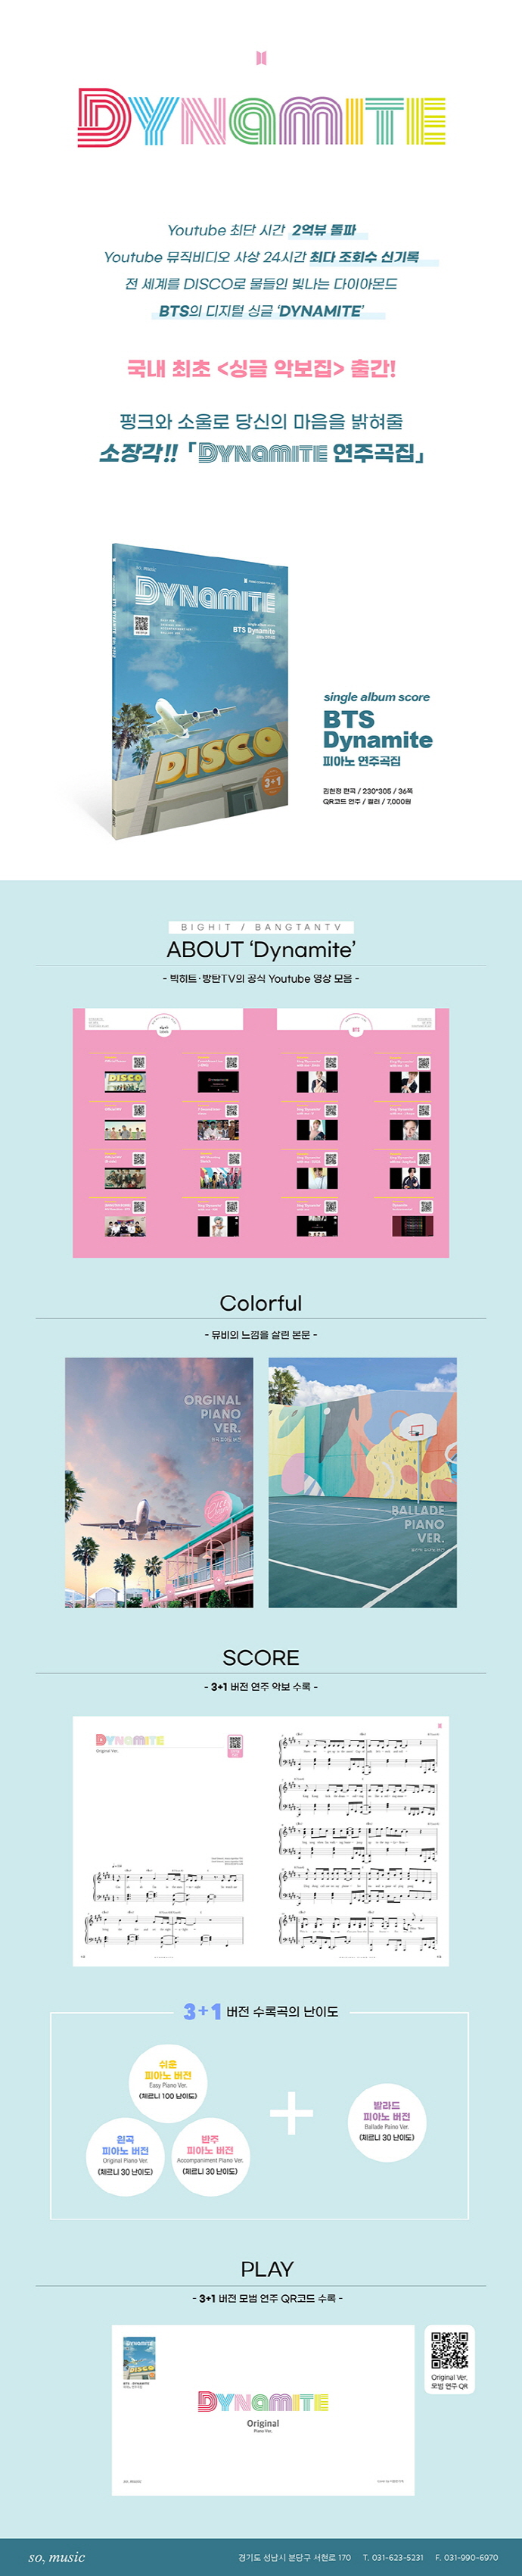 BTS Dynamite Piano Songbook Book Detailed Images